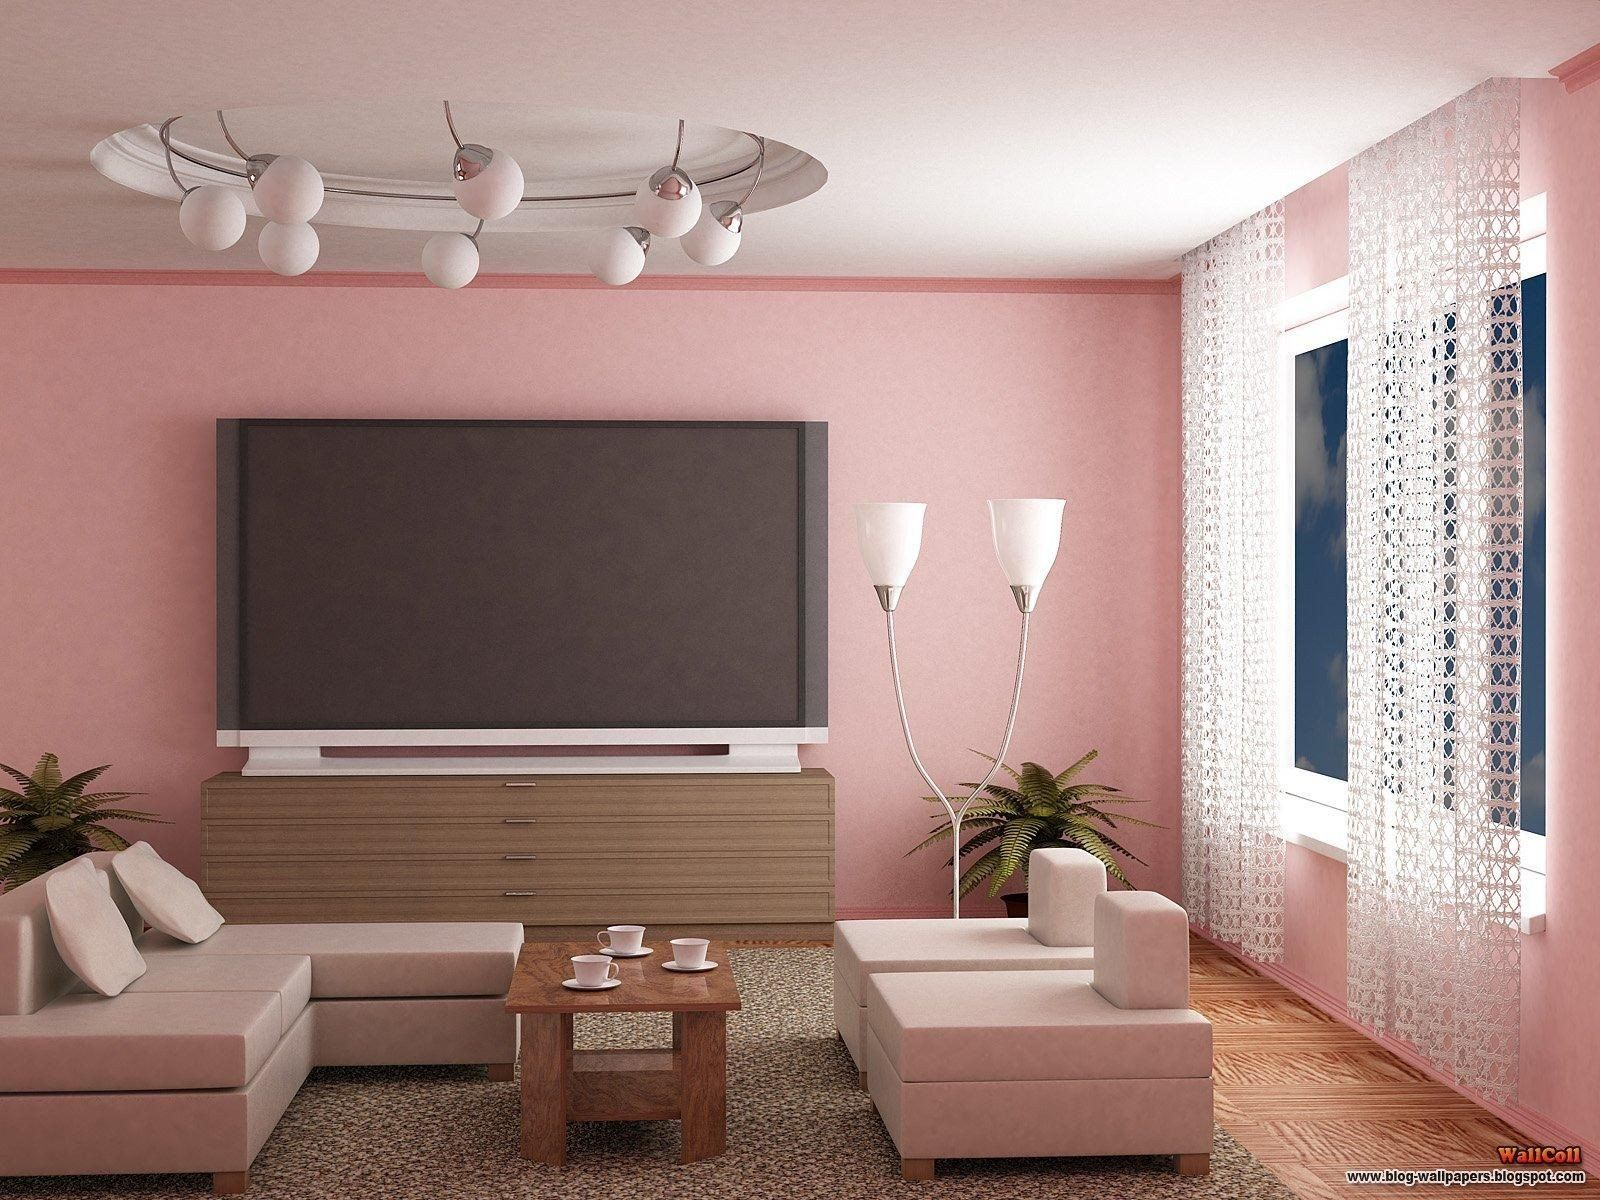 Wall Painting For Living Room Cute Living Room Paint Idea In Chic Pinky Theme With Pink In 2020 Room Wall Colors Living Room Wall Color Living Room Paint